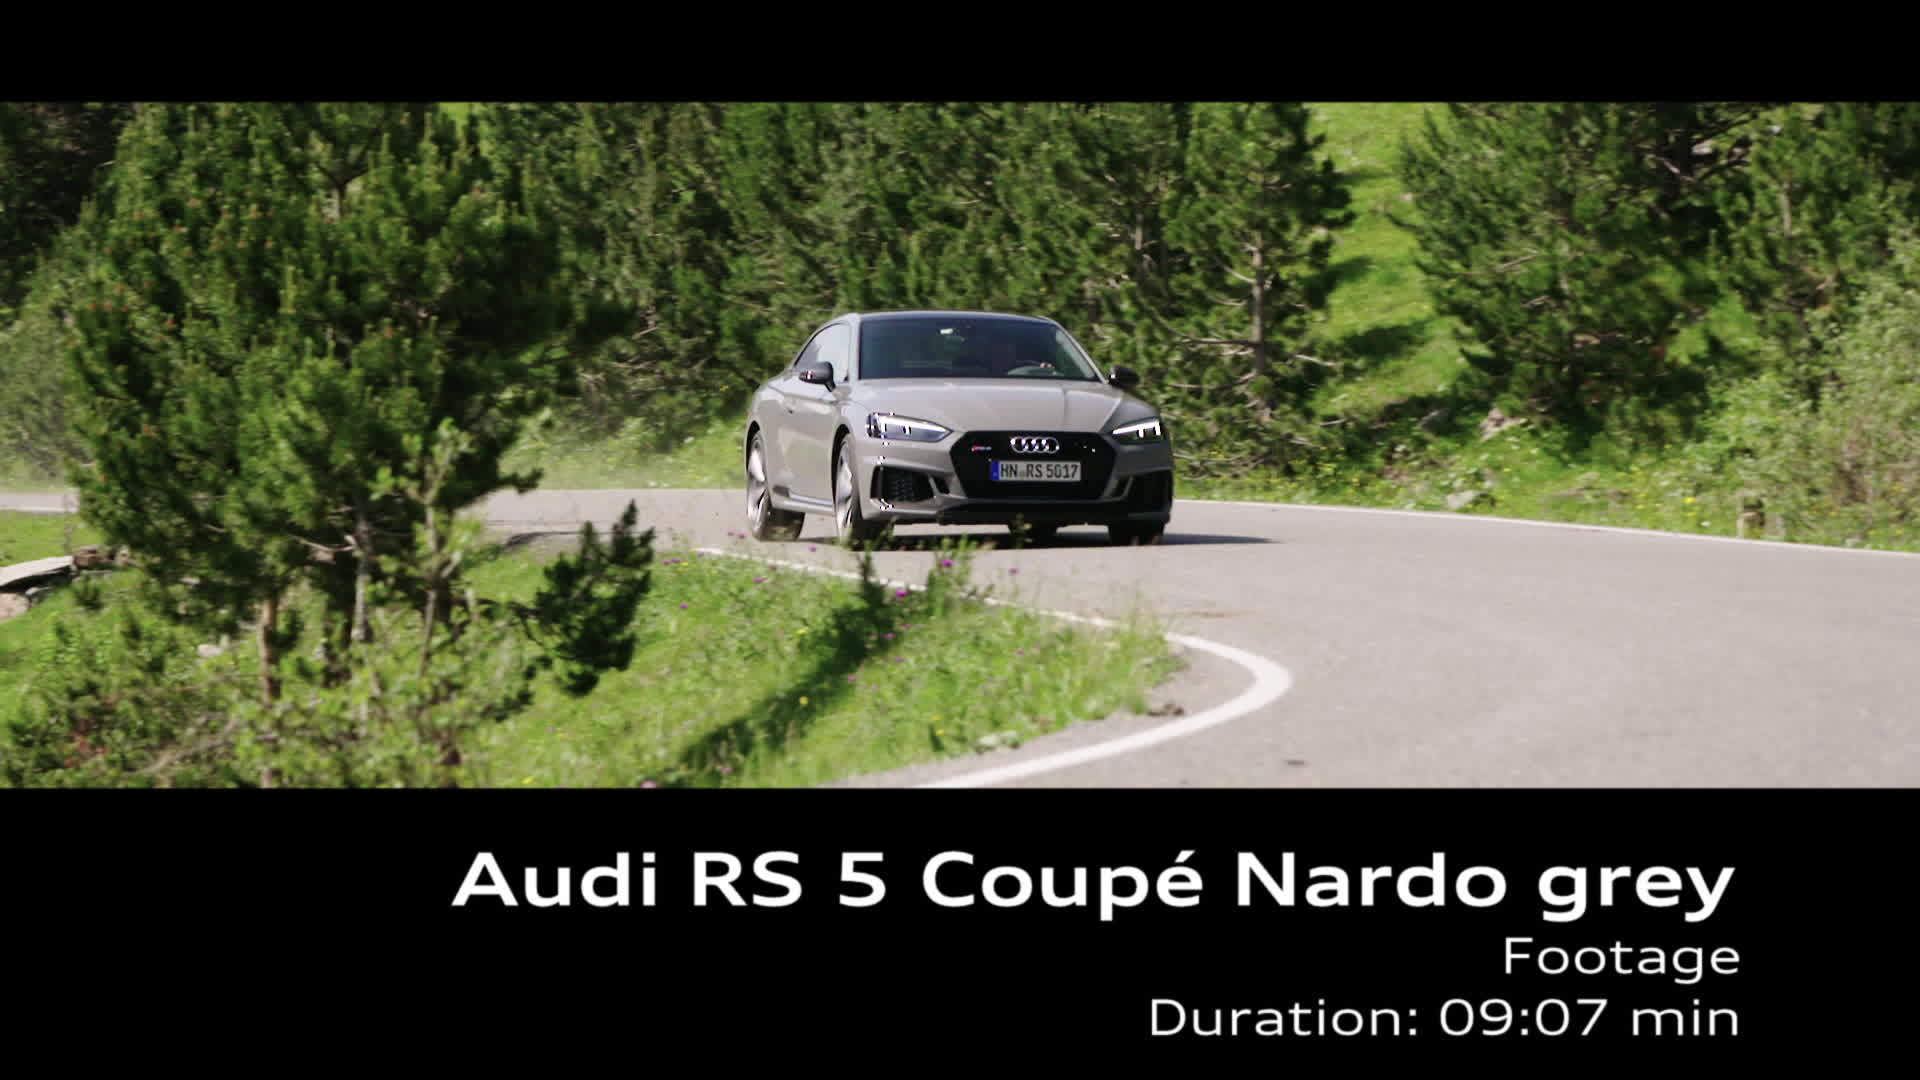 Audi RS 5 Coupé Nardo grey - Footage on Location Andorra